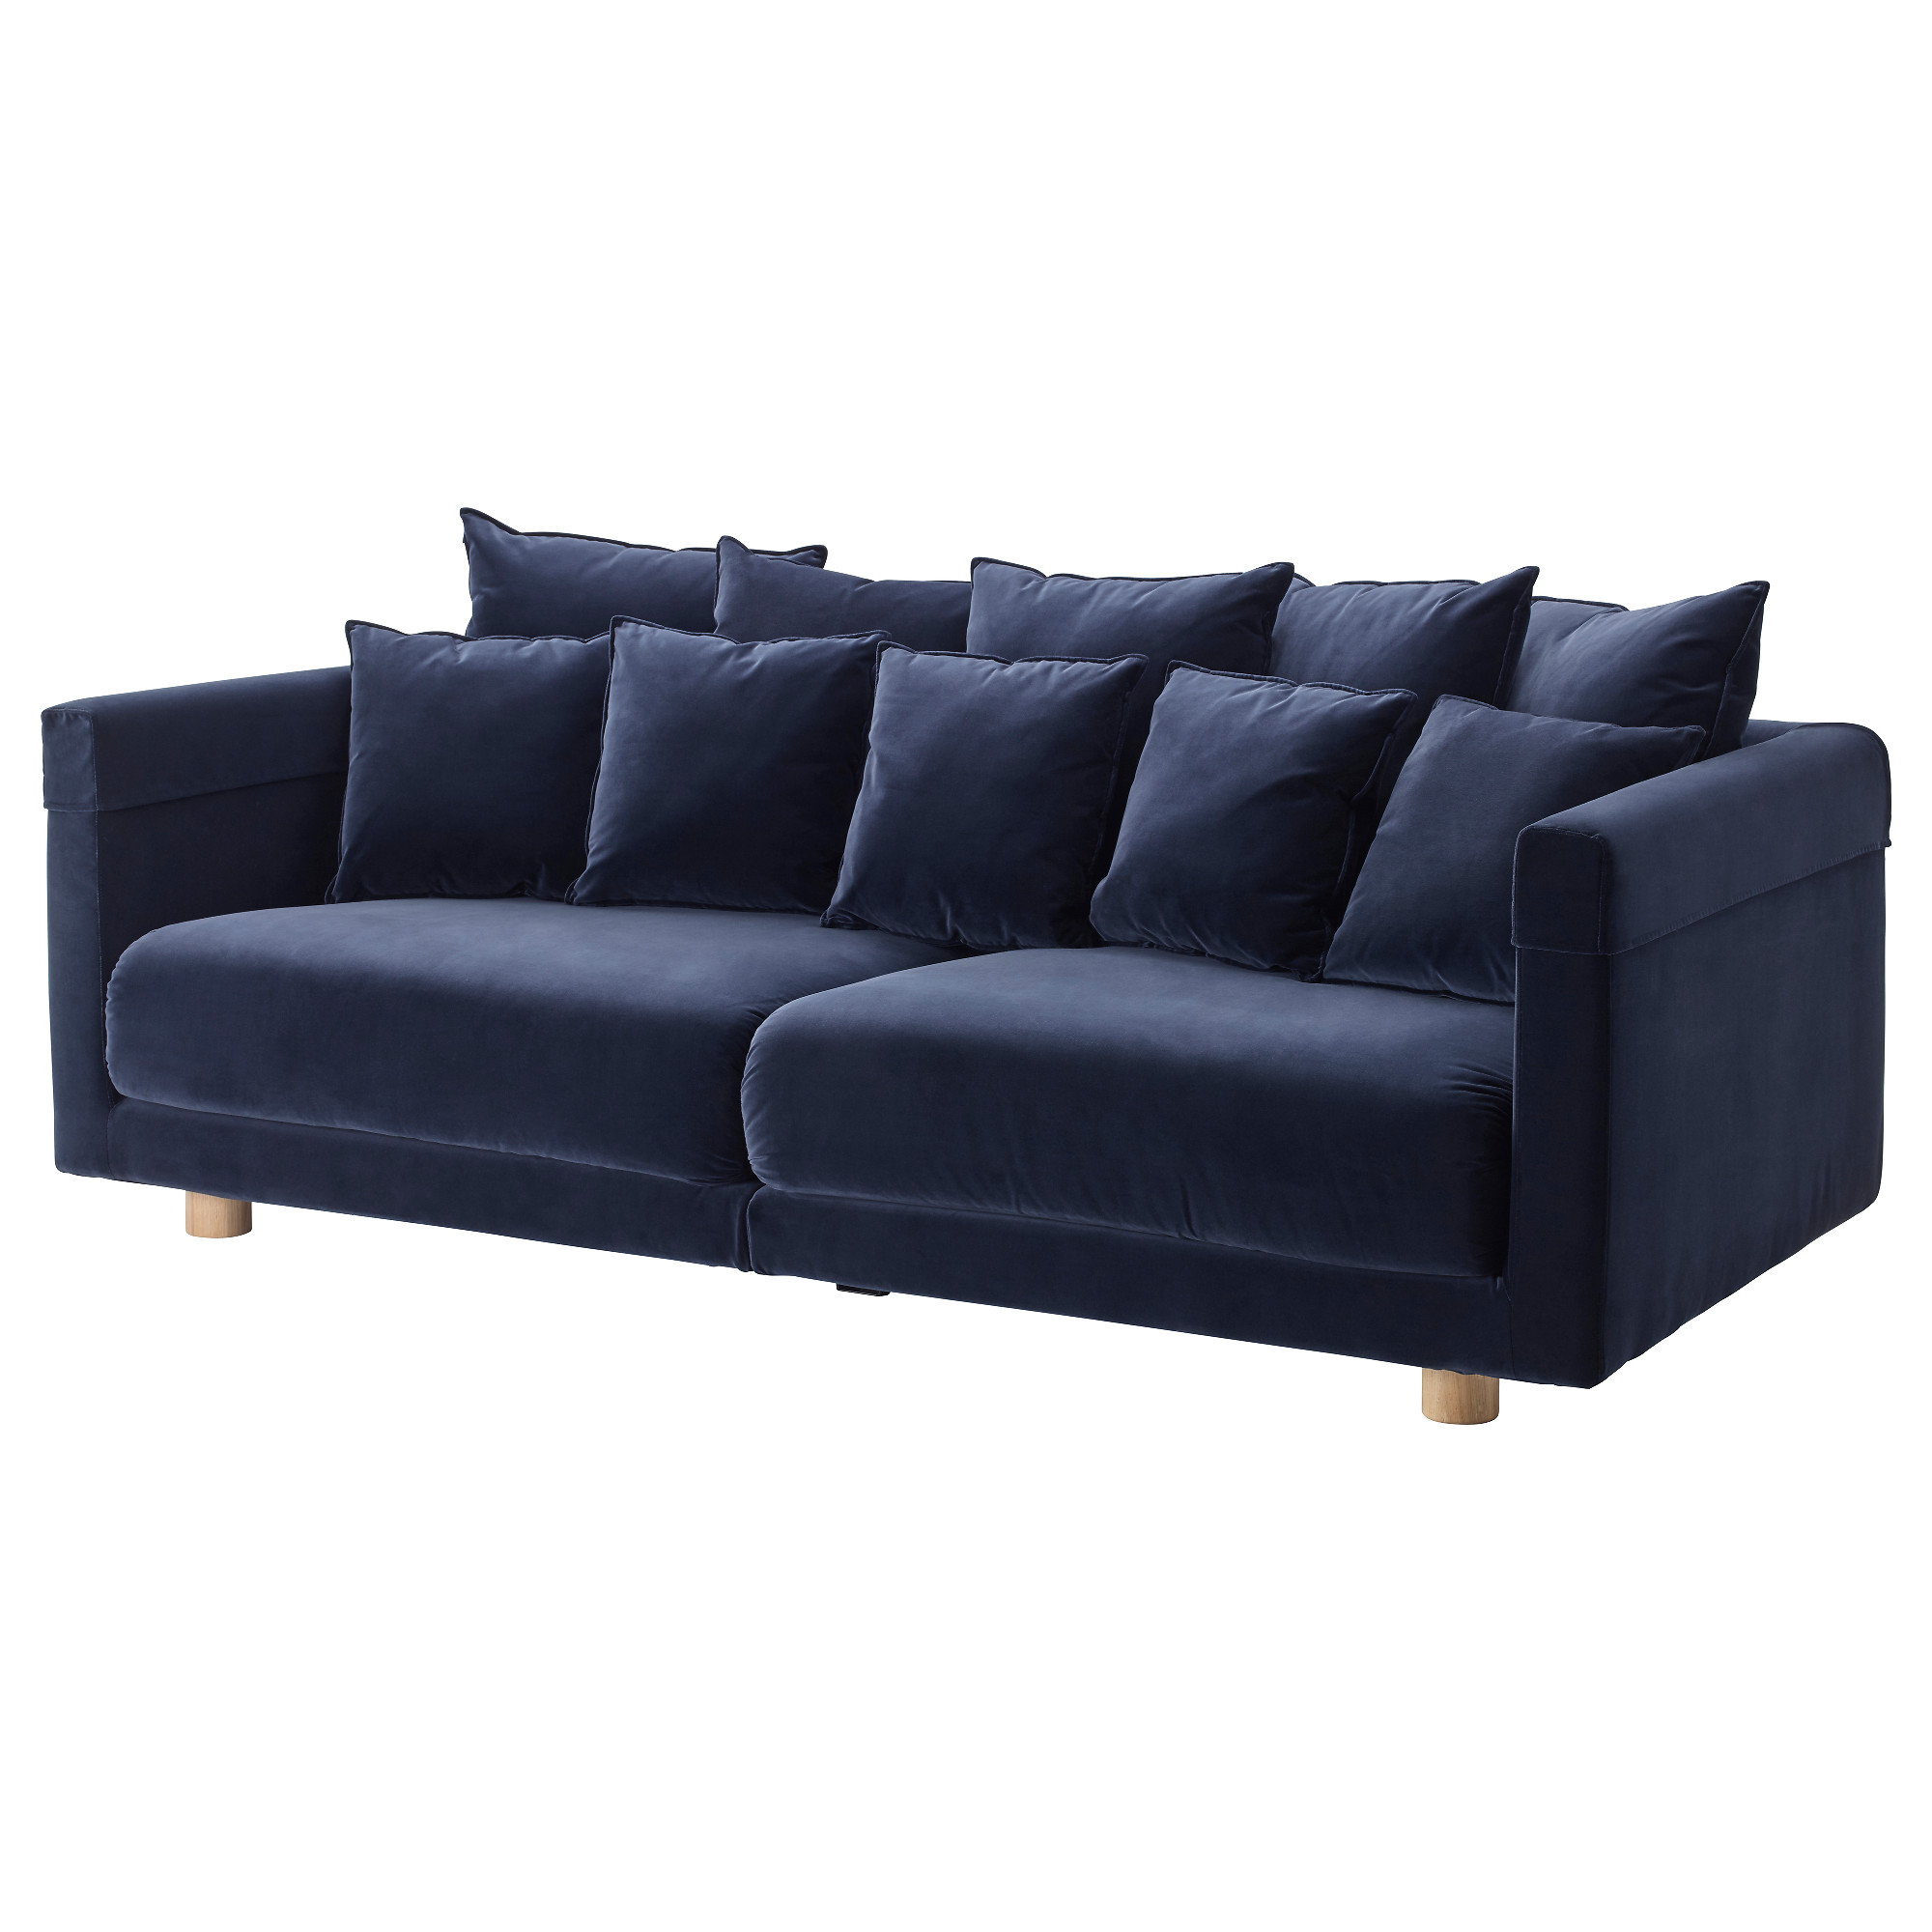 Three Seat Sofa Stockholm 2017 Sandbacka Dark Blue